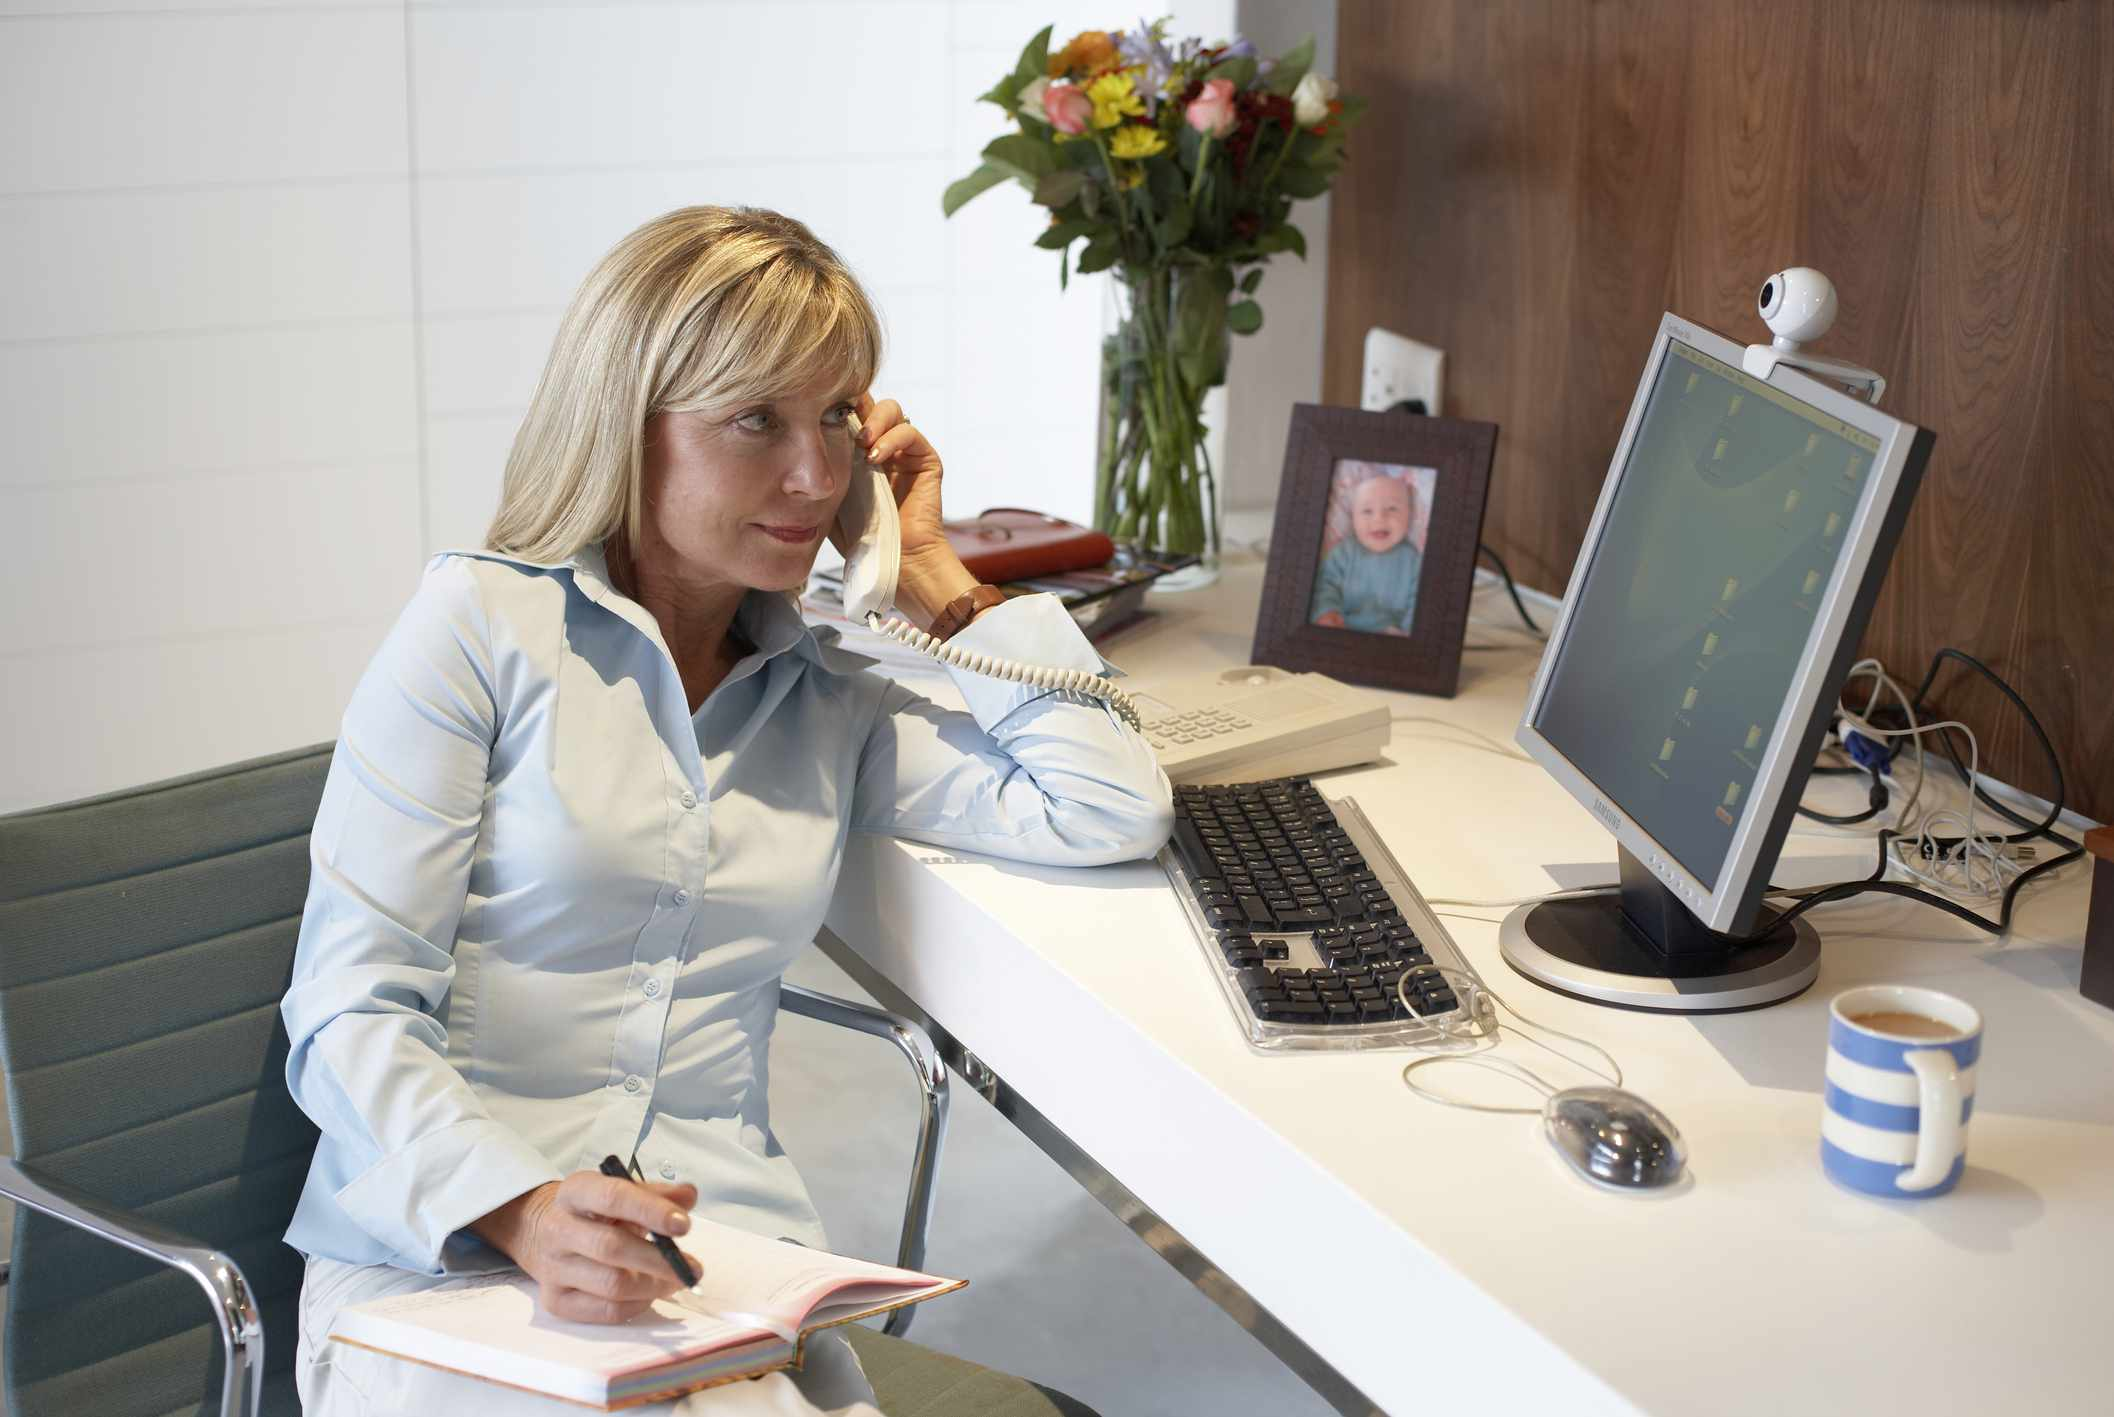 Woman working from home with computer and telephone